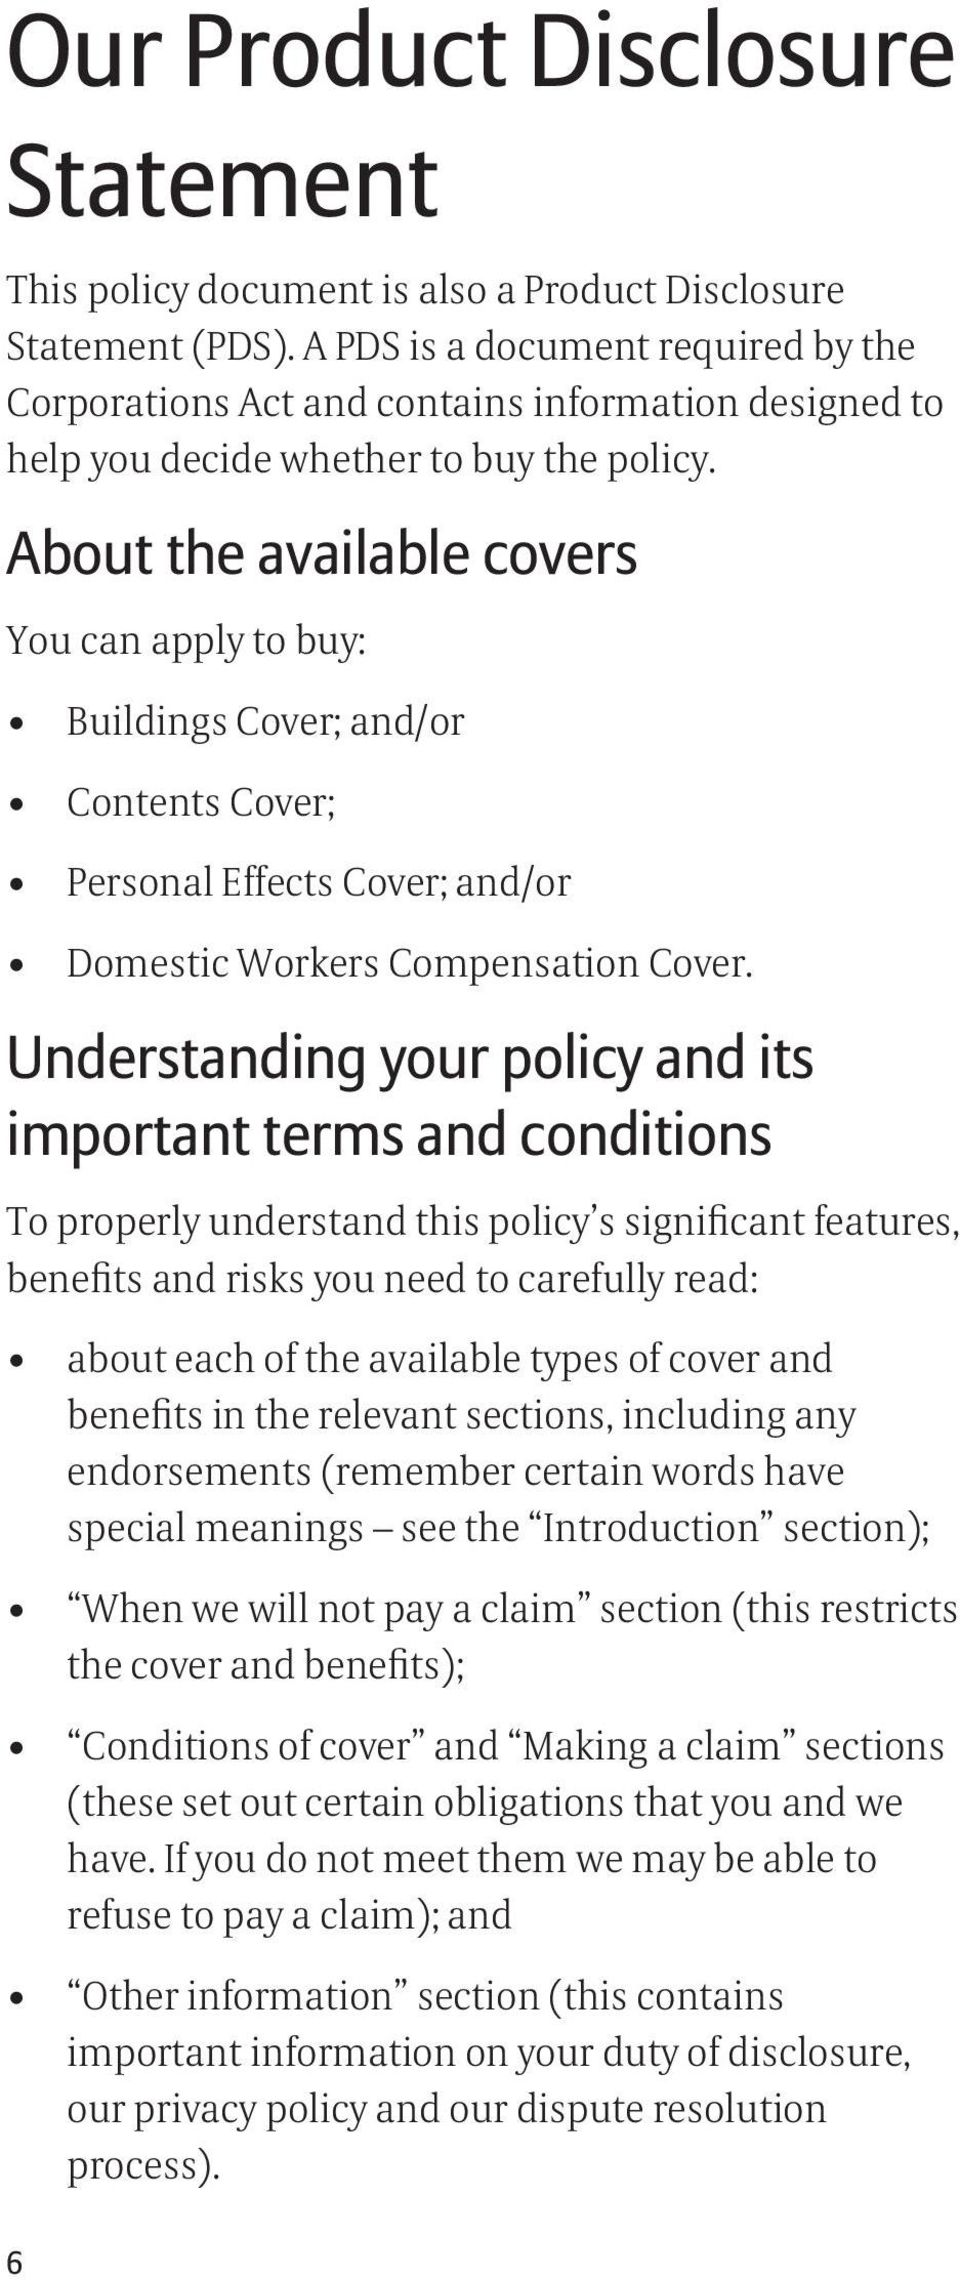 About the available covers You can apply to buy: Buildings Cover; and/or Contents Cover; Personal Effects Cover; and/or Domestic Workers Compensation Cover.